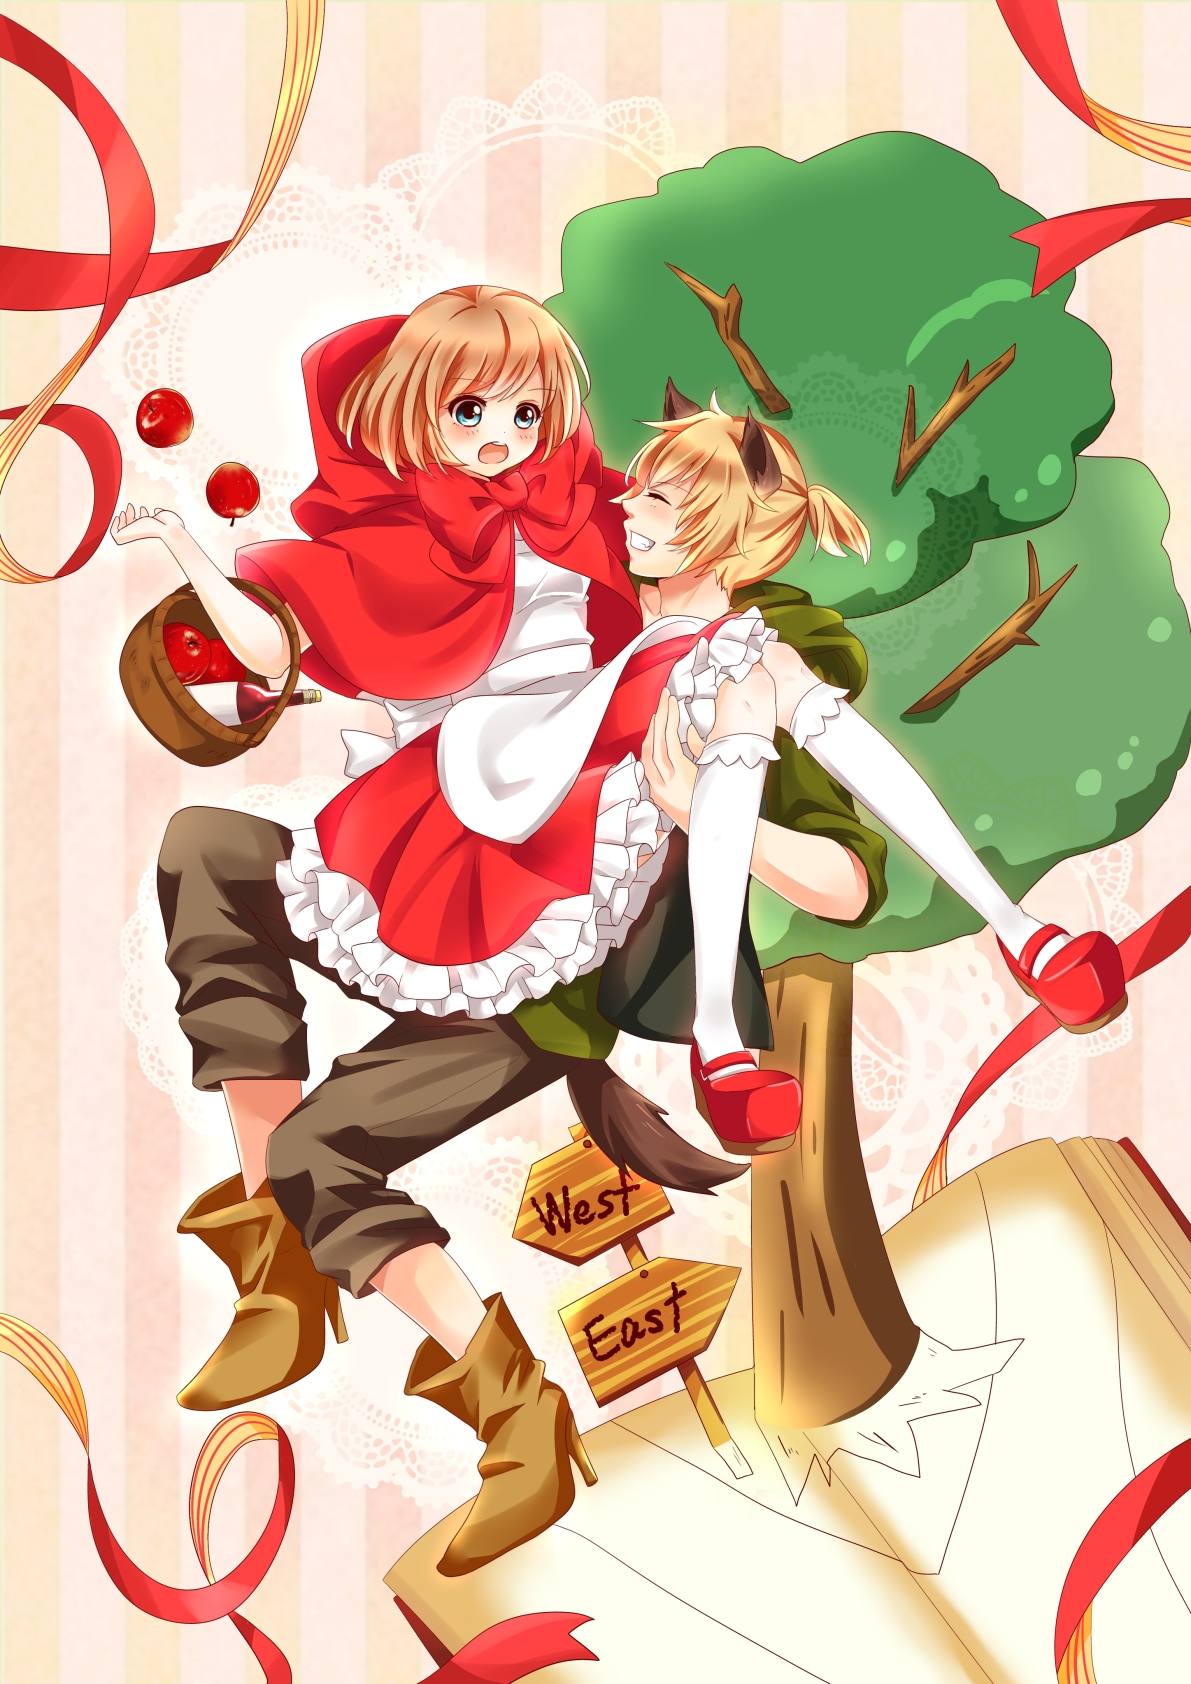 Red riding hood cosplay page 2 zerochan anime image board the wolf that fell in love with red riding hood sciox Choice Image